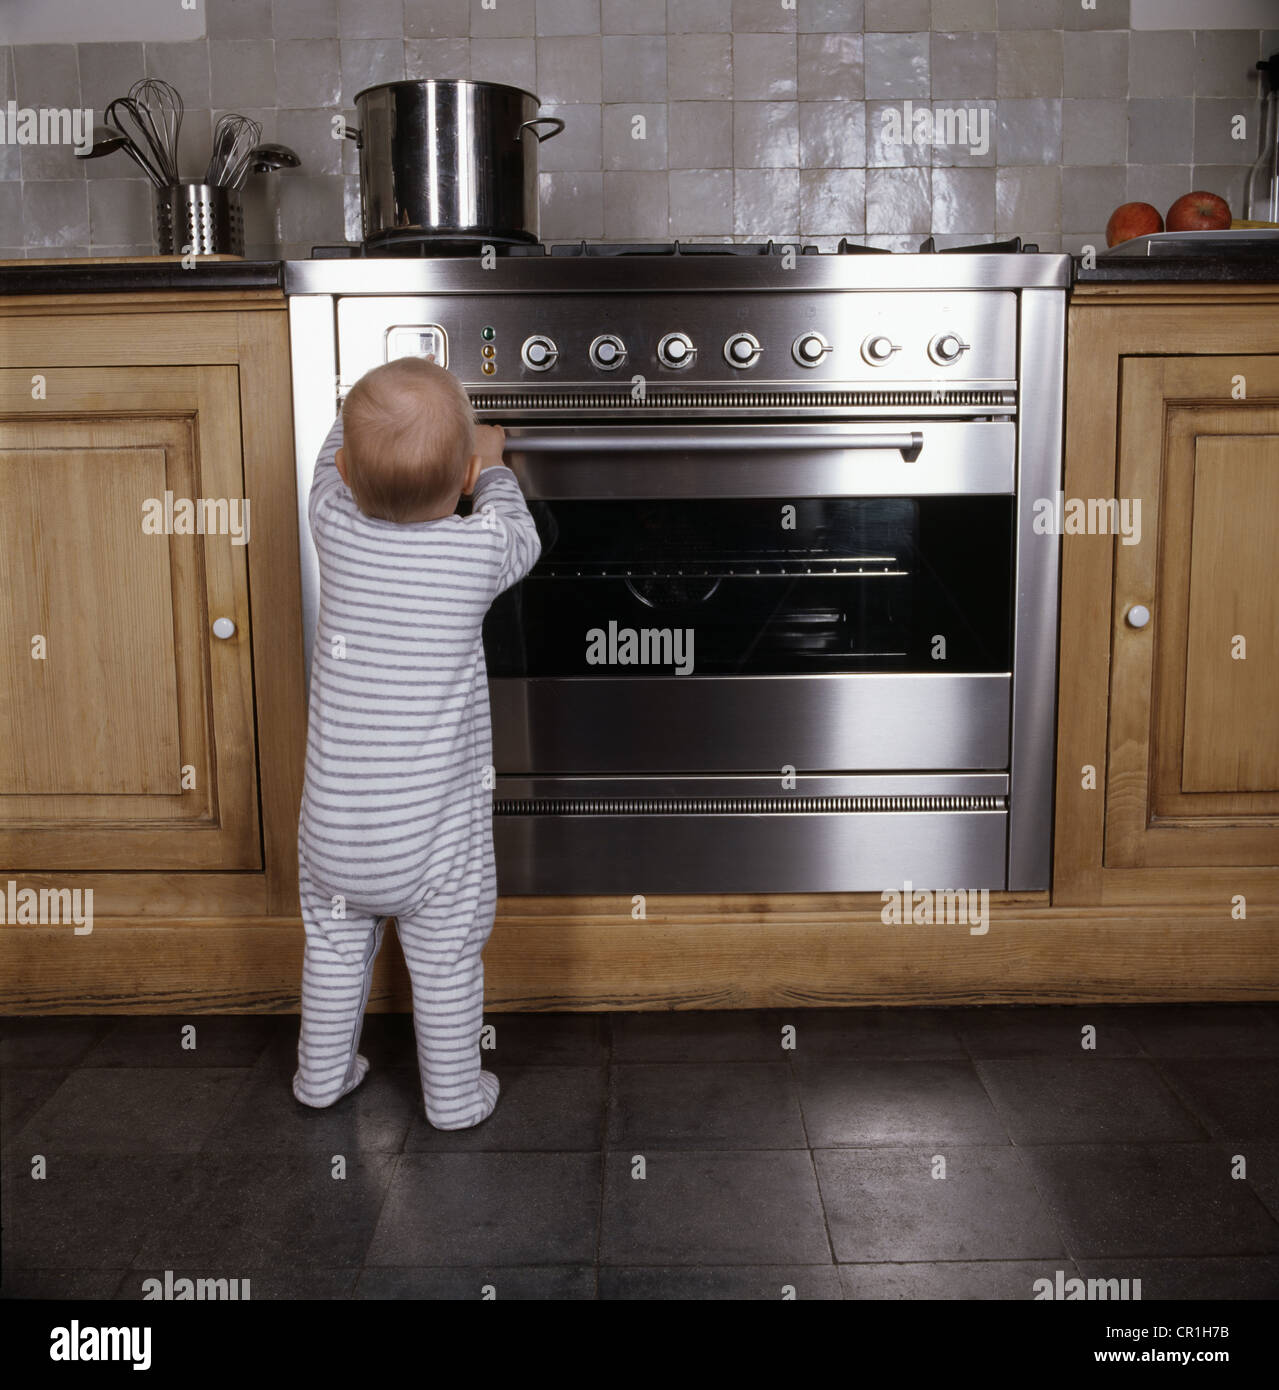 Infant standing by oven in kitchen - Stock Image